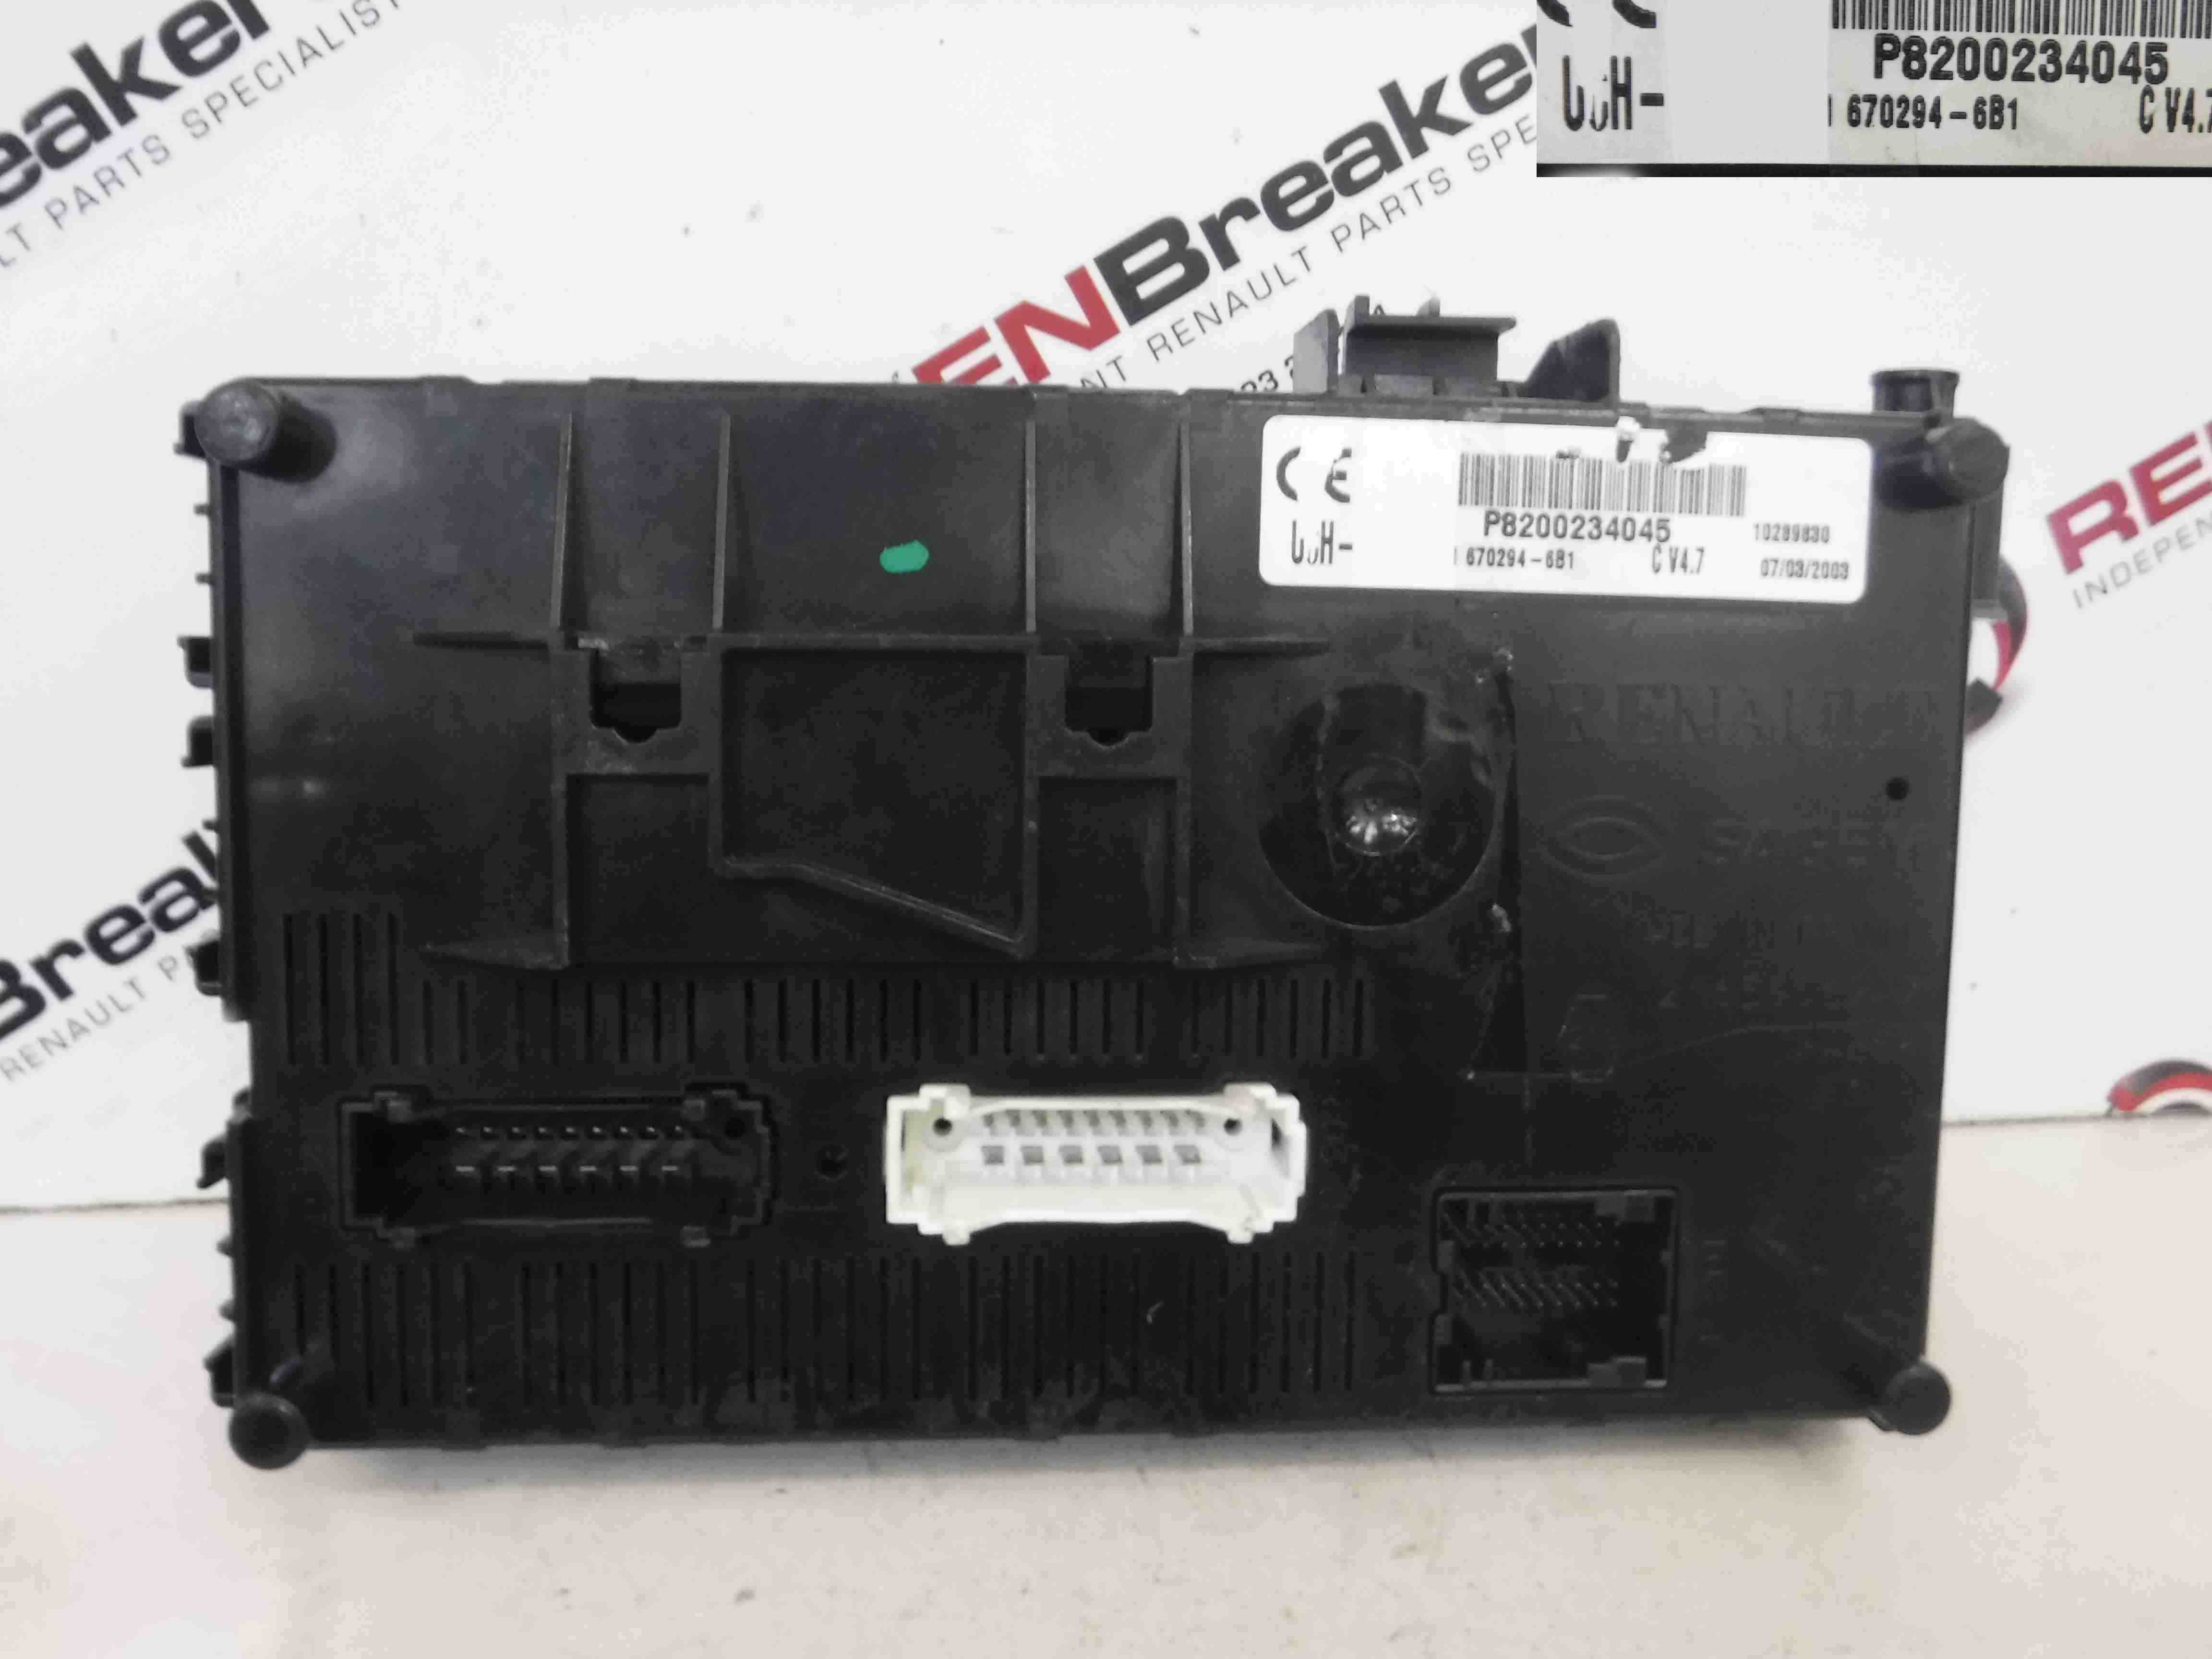 Renault Clio Mk3 Fuse Box Layout : Fuse box for renault clio wiring library